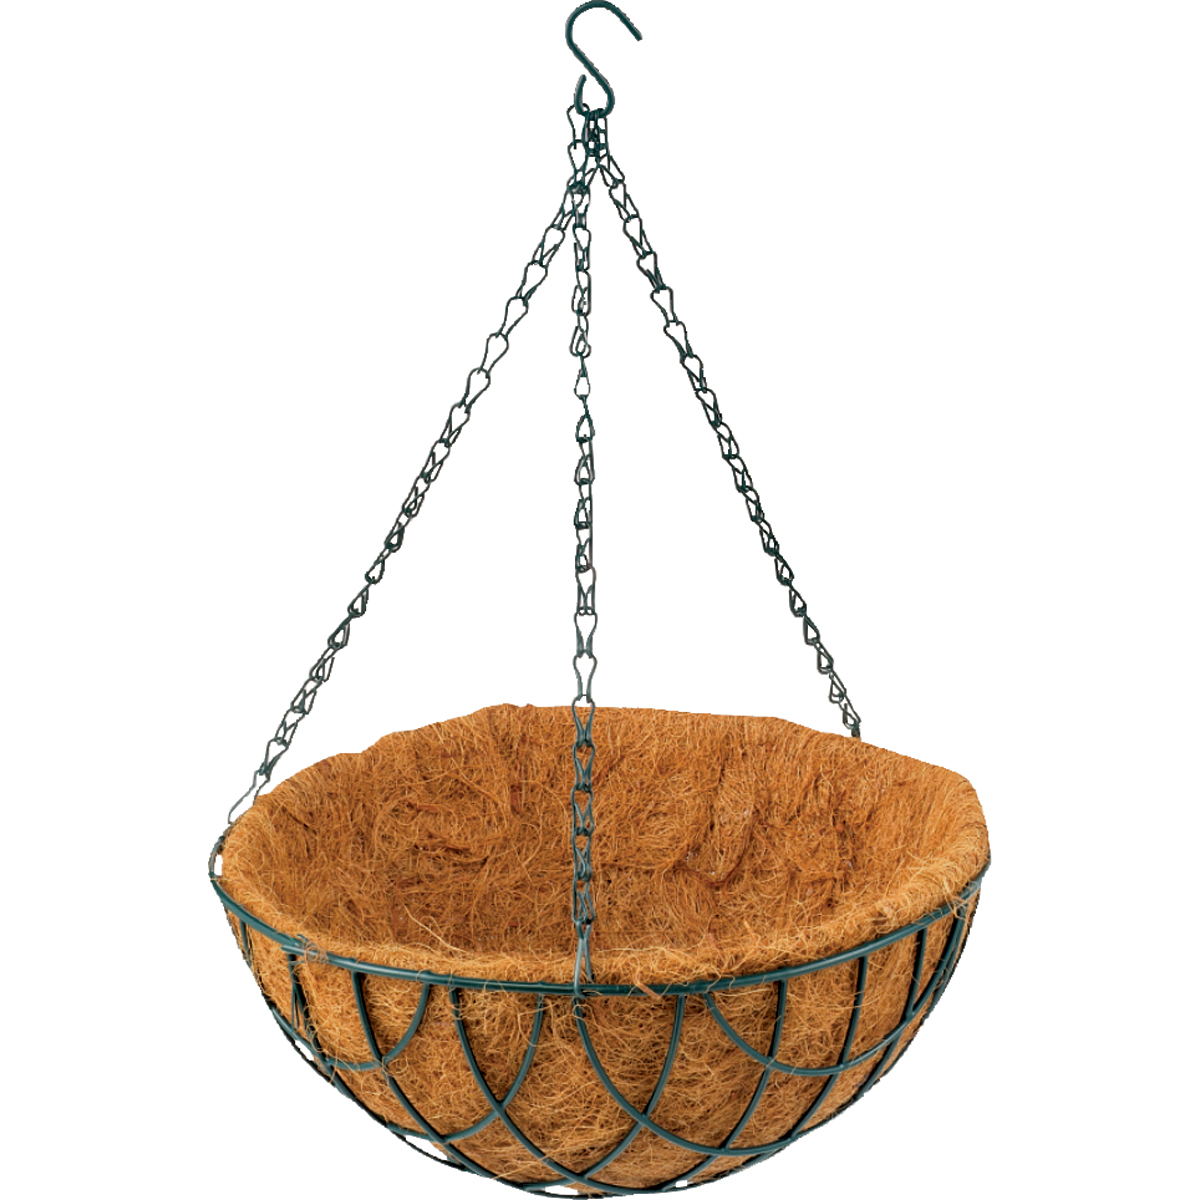 Picture of Landscapers Select GB-4303-3L Hanging Planter, Circle, 22 lb Capacity, Natural Coconut/Steel, Matte Green